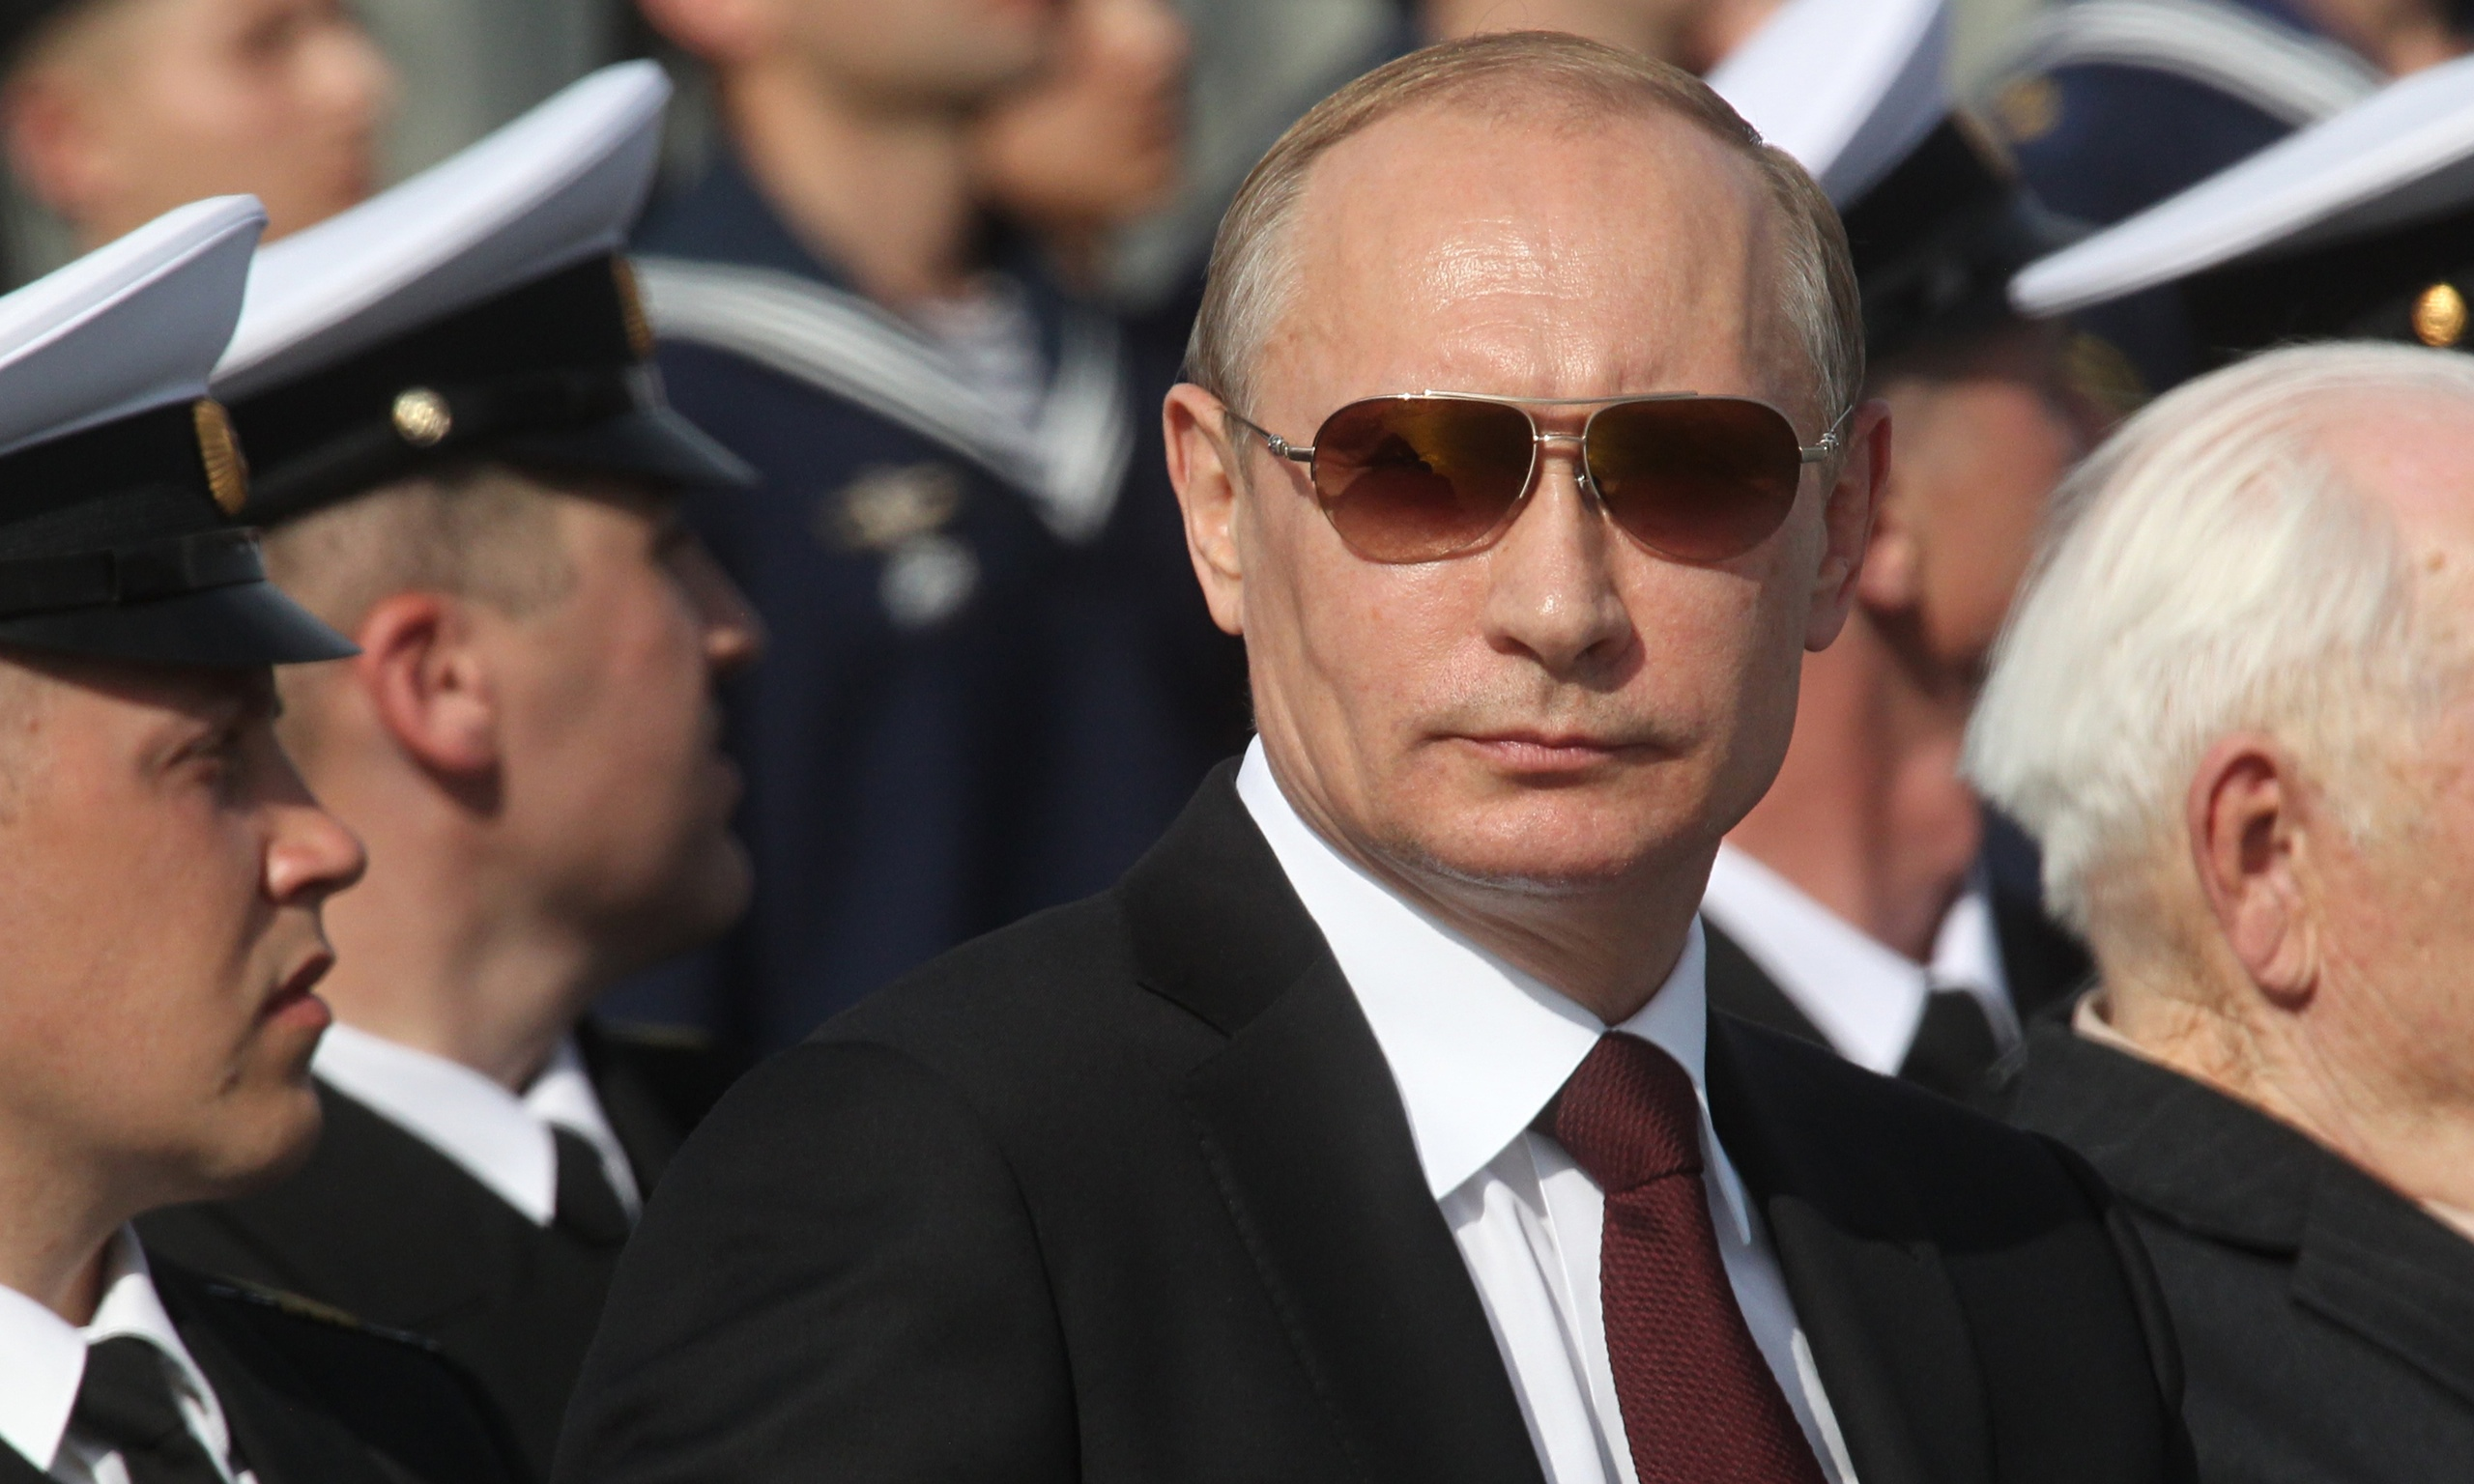 Vladimir Putin at a navy parade in Severomorsk